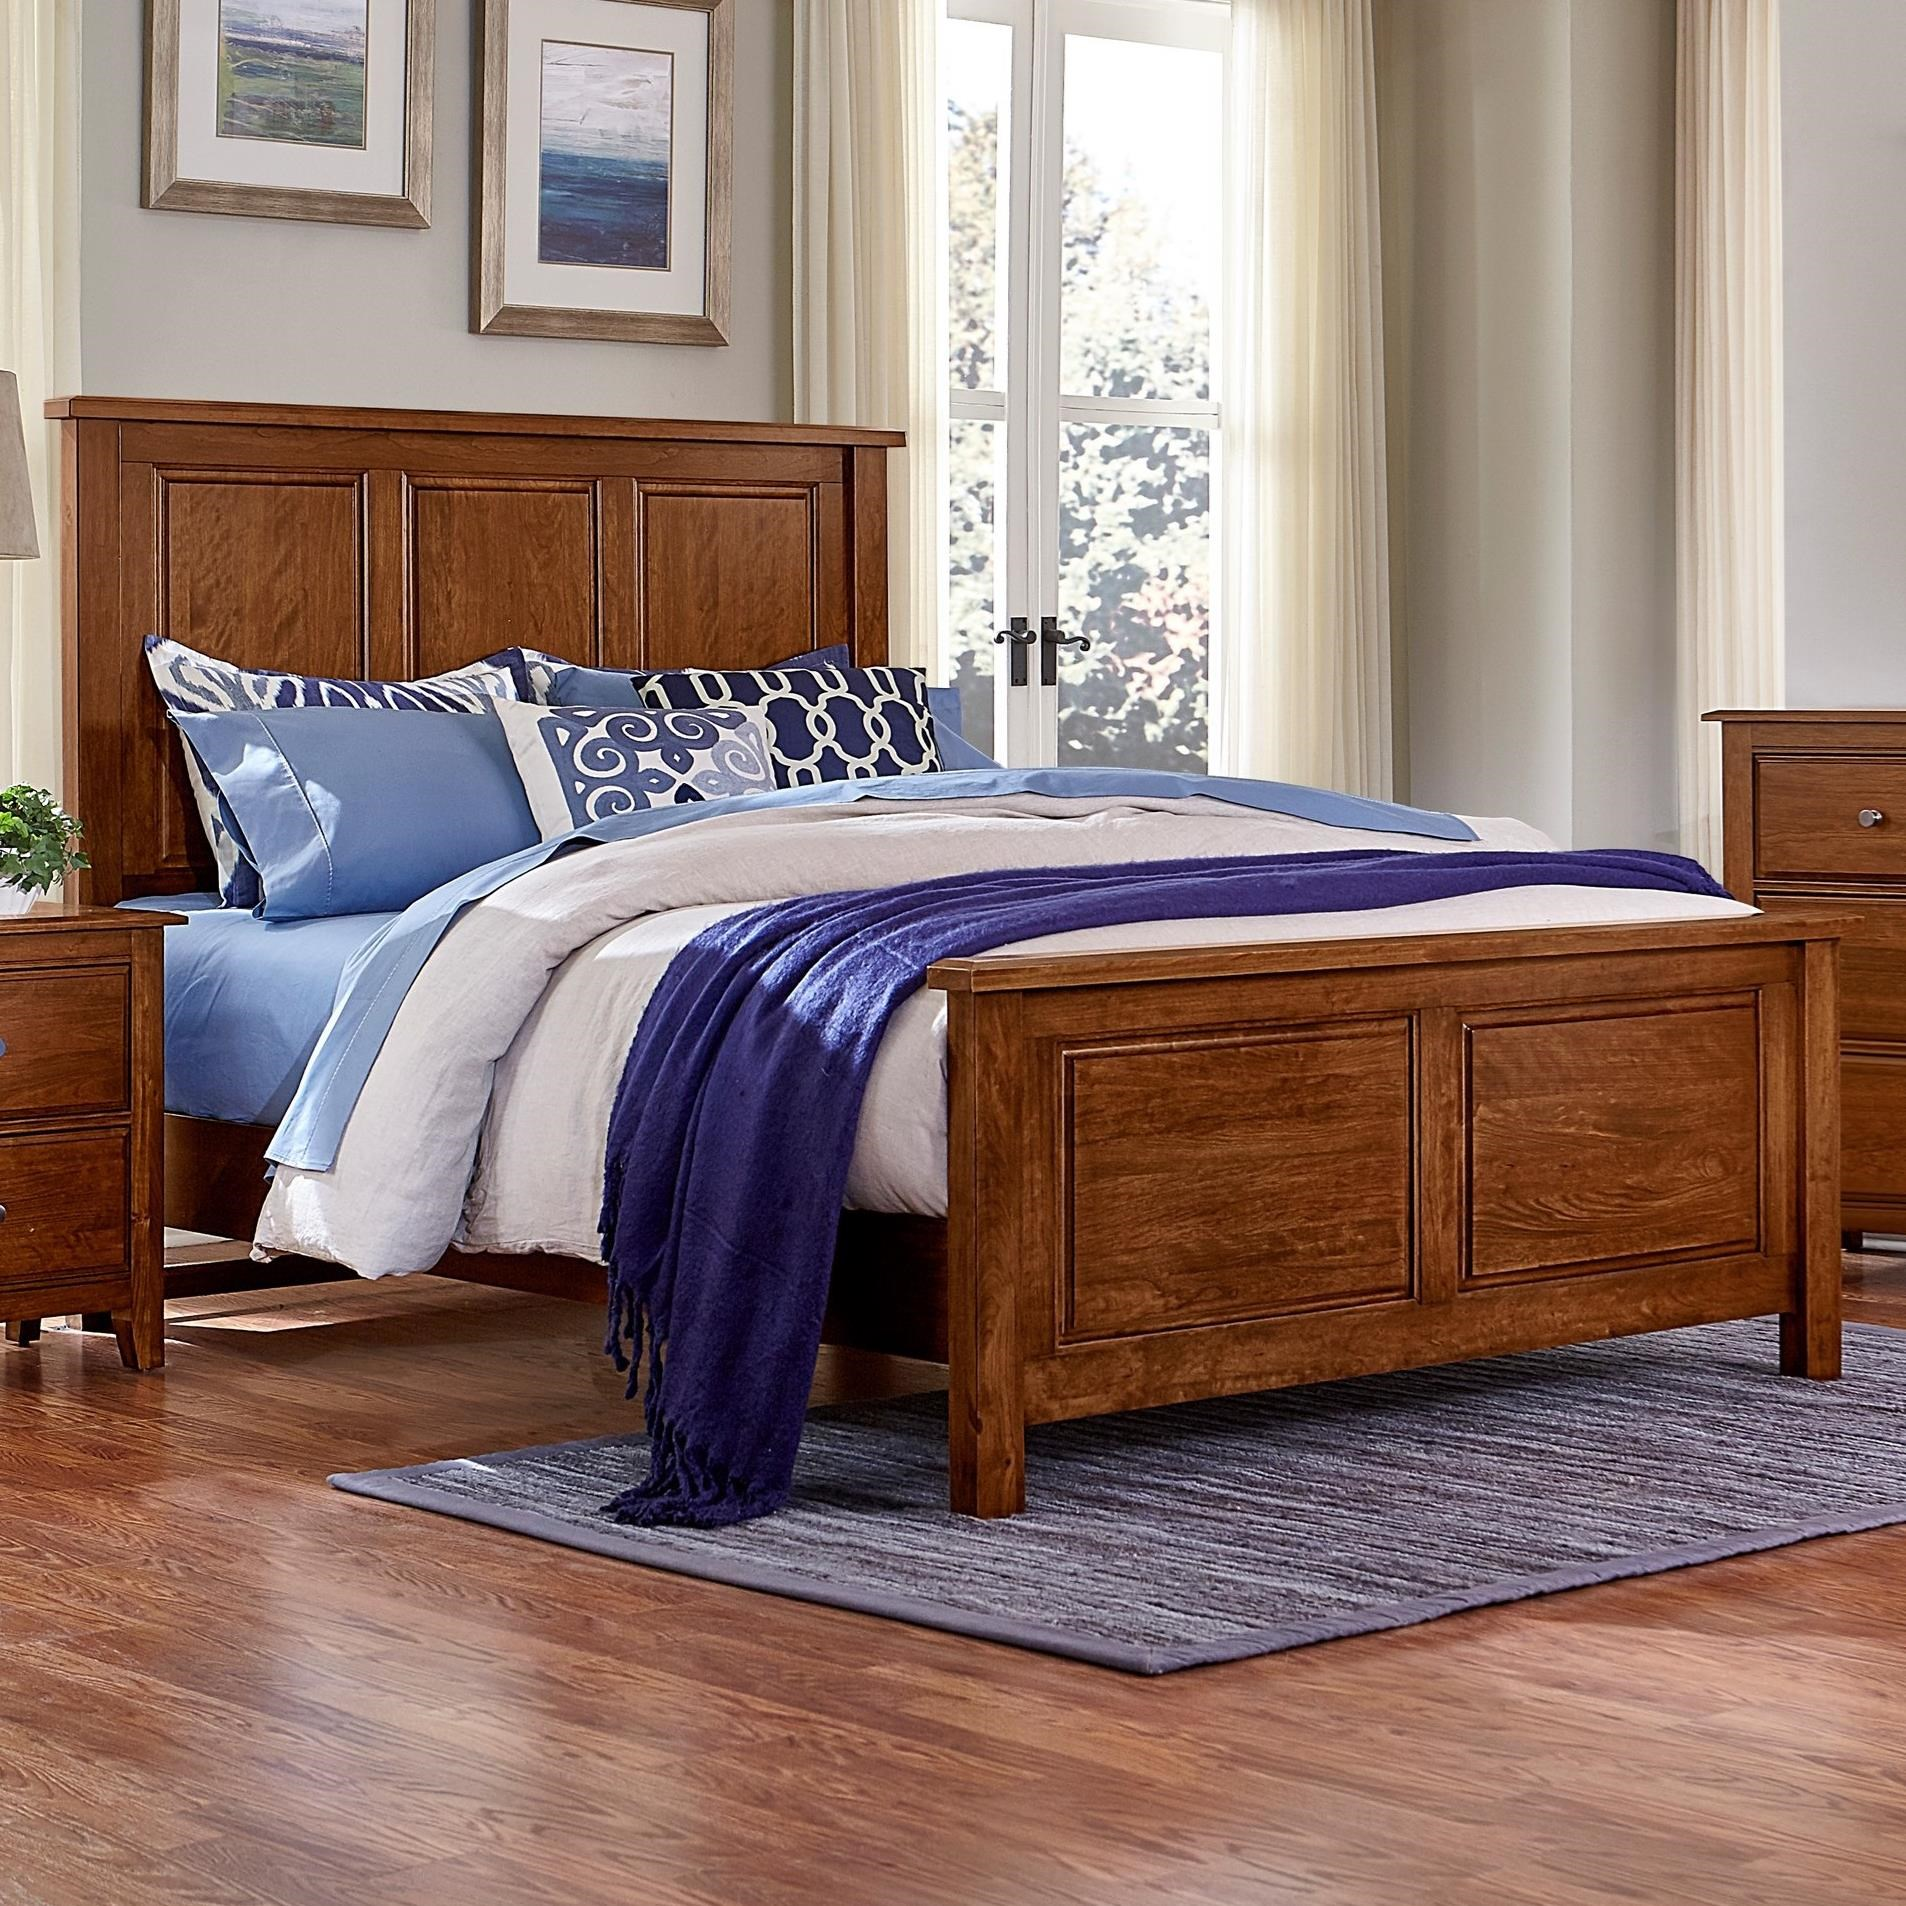 Artisan Choices Queen Panel Bed by Artisan & Post at Zak's Home